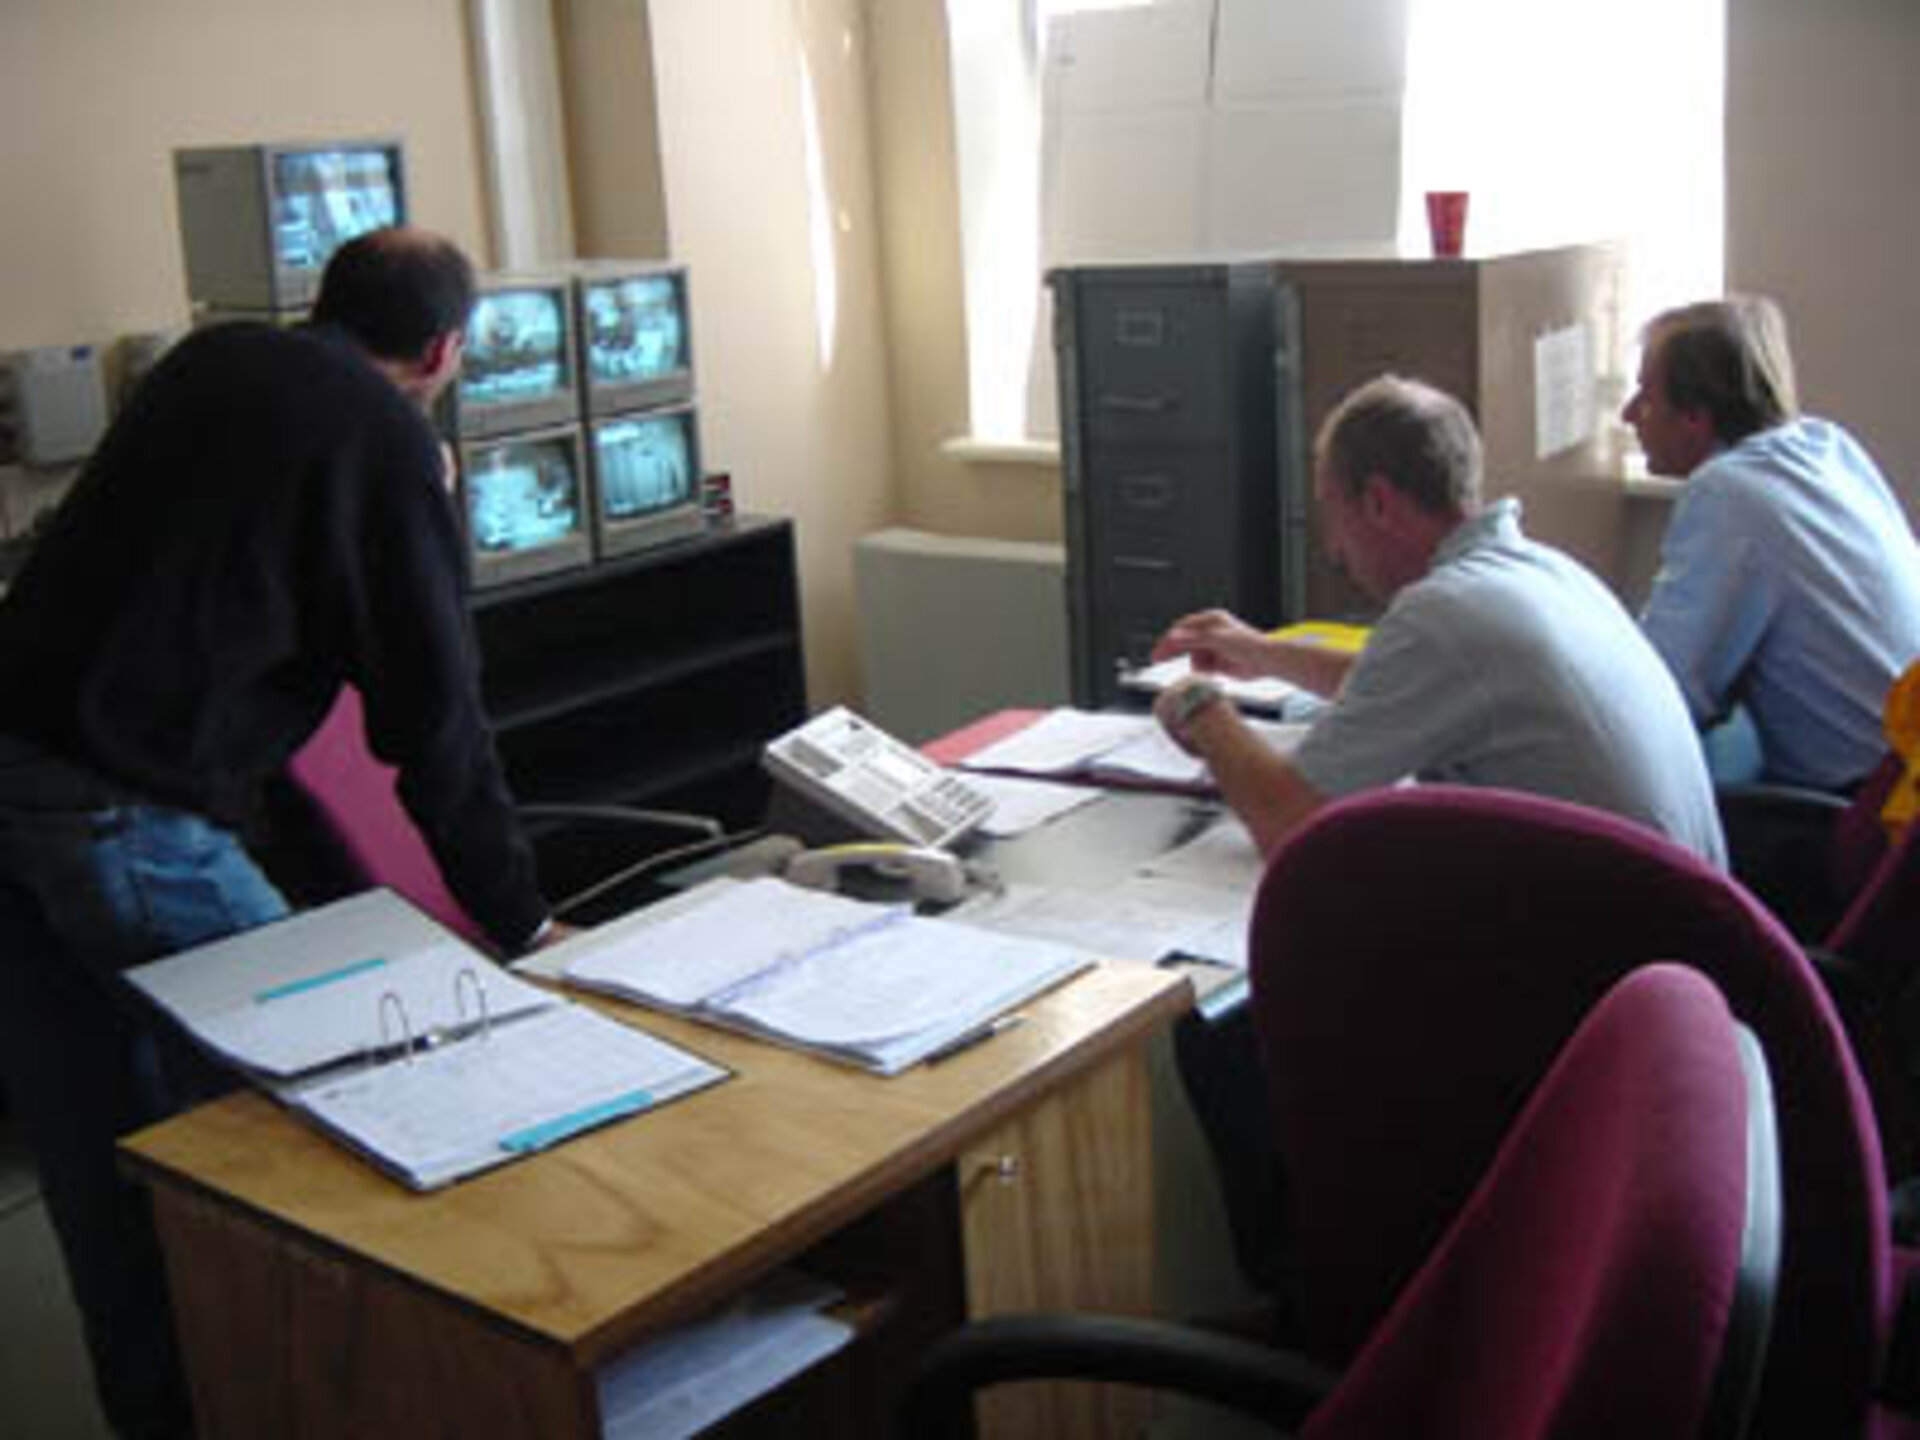 21.09.02 The observer team, double-checking the completion of the step-by-step procedure